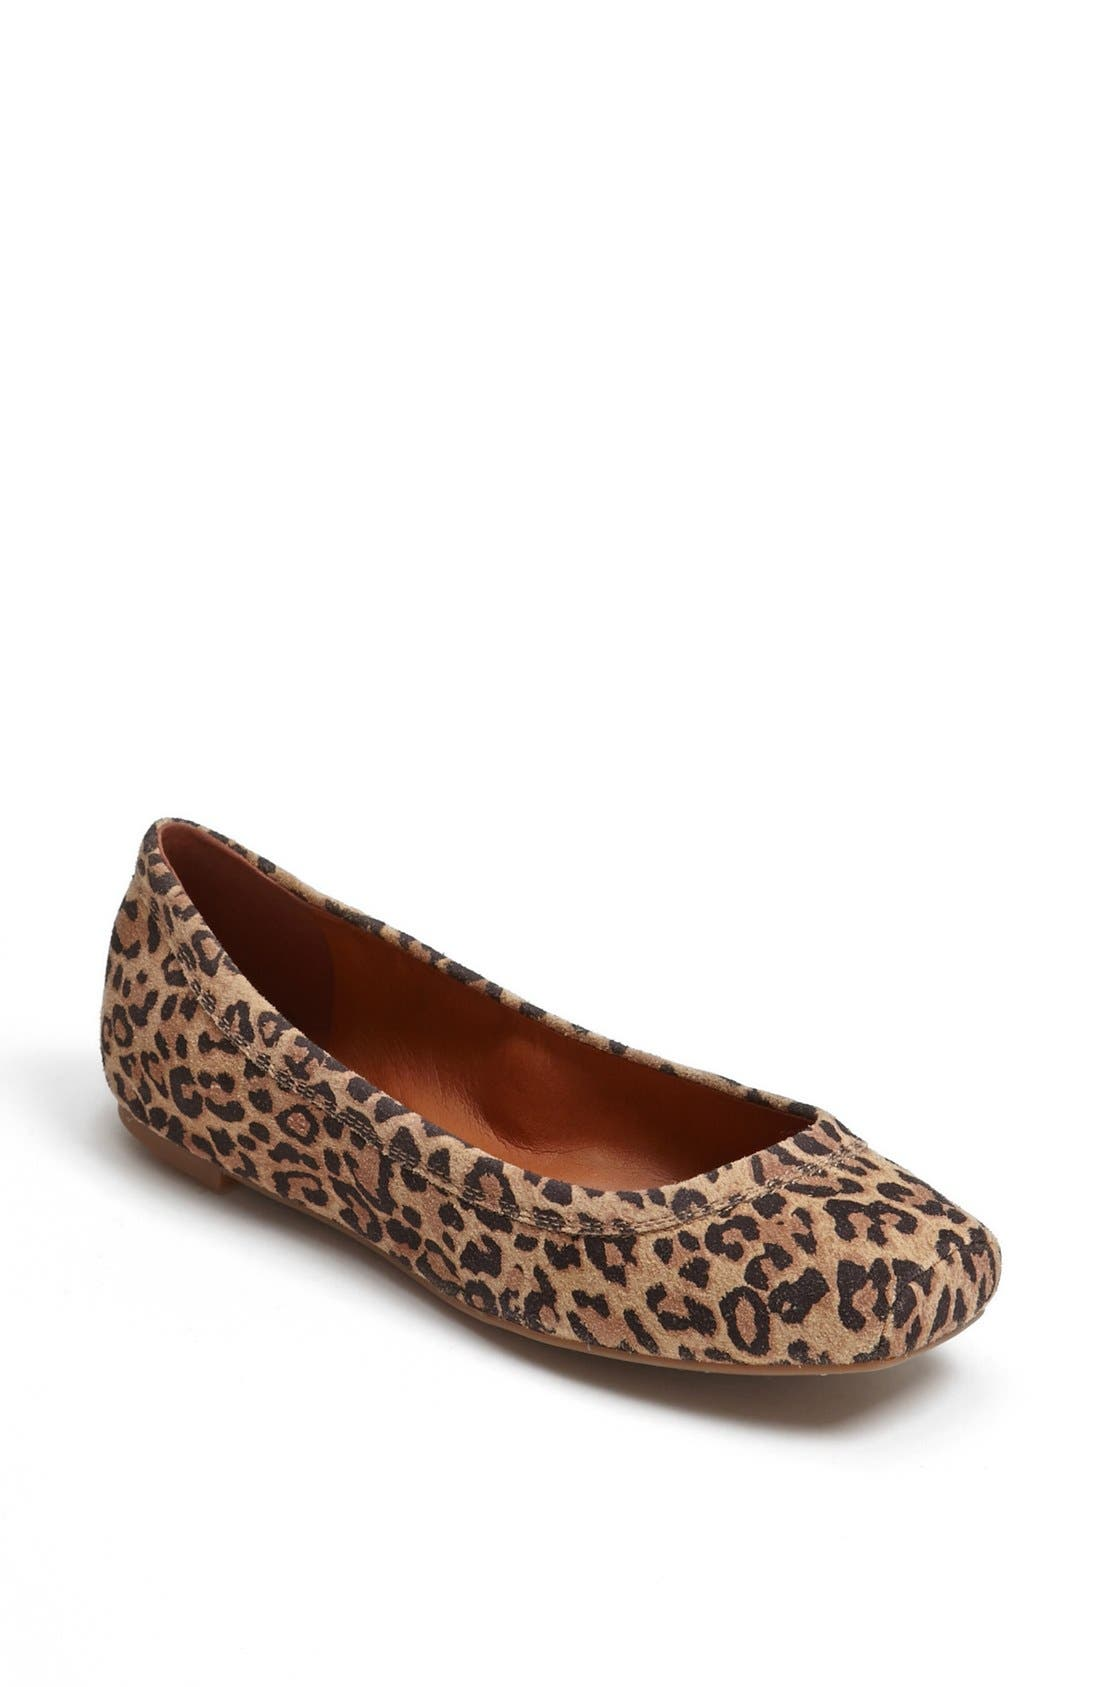 Alternate Image 1 Selected - Lucky Brand 'Santana' Flat